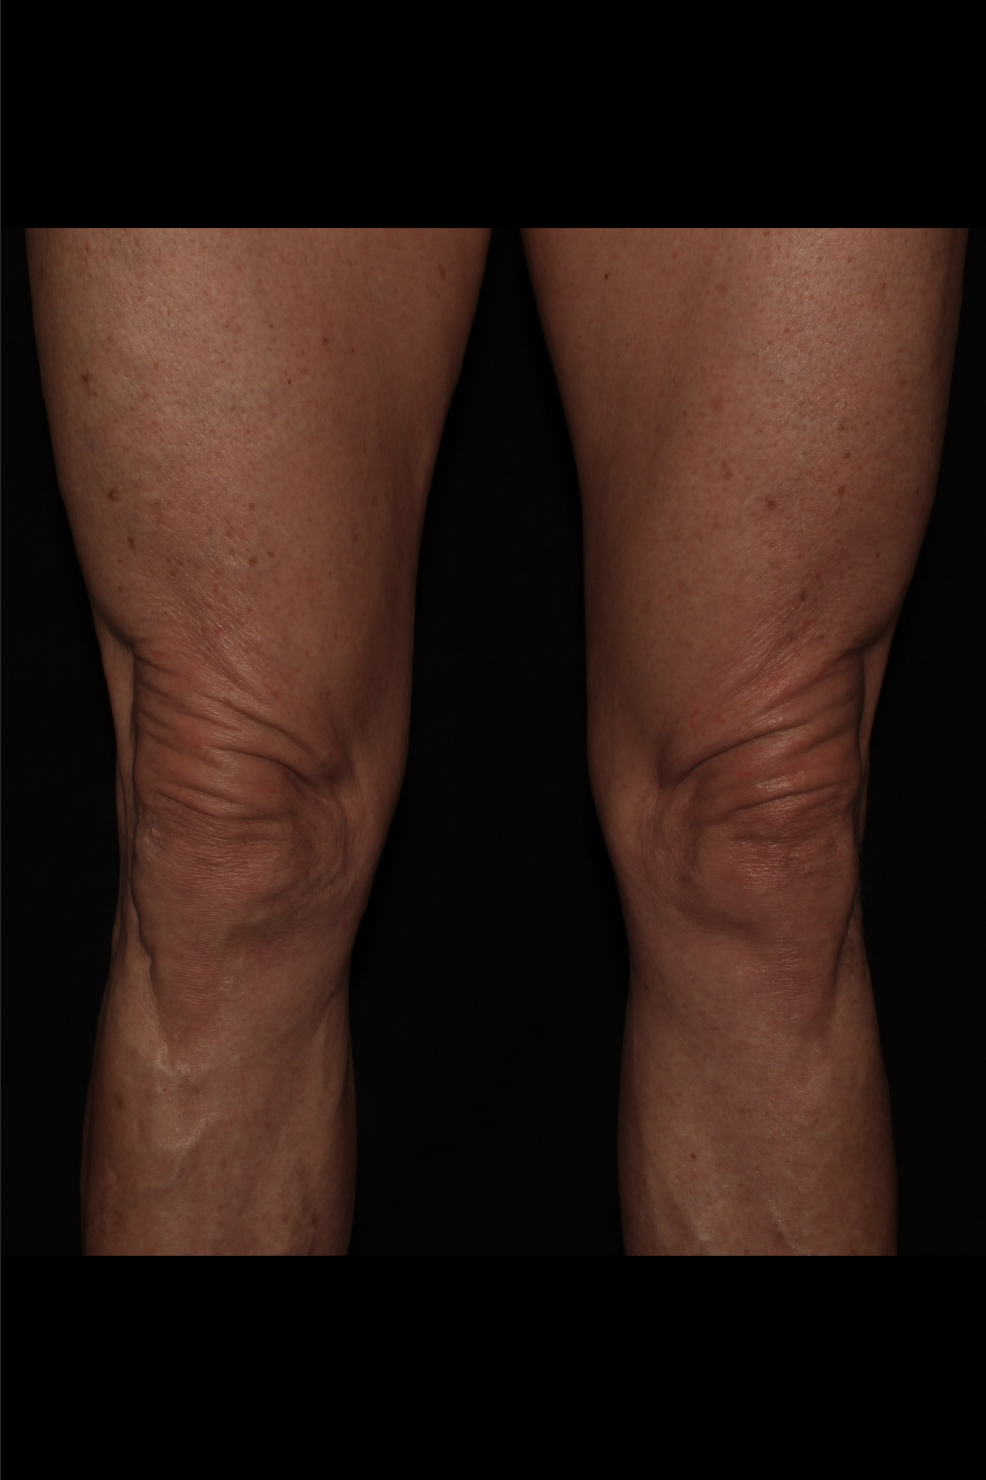 Before Thighs Procedure - Knee Lift - Excess Skin Removal